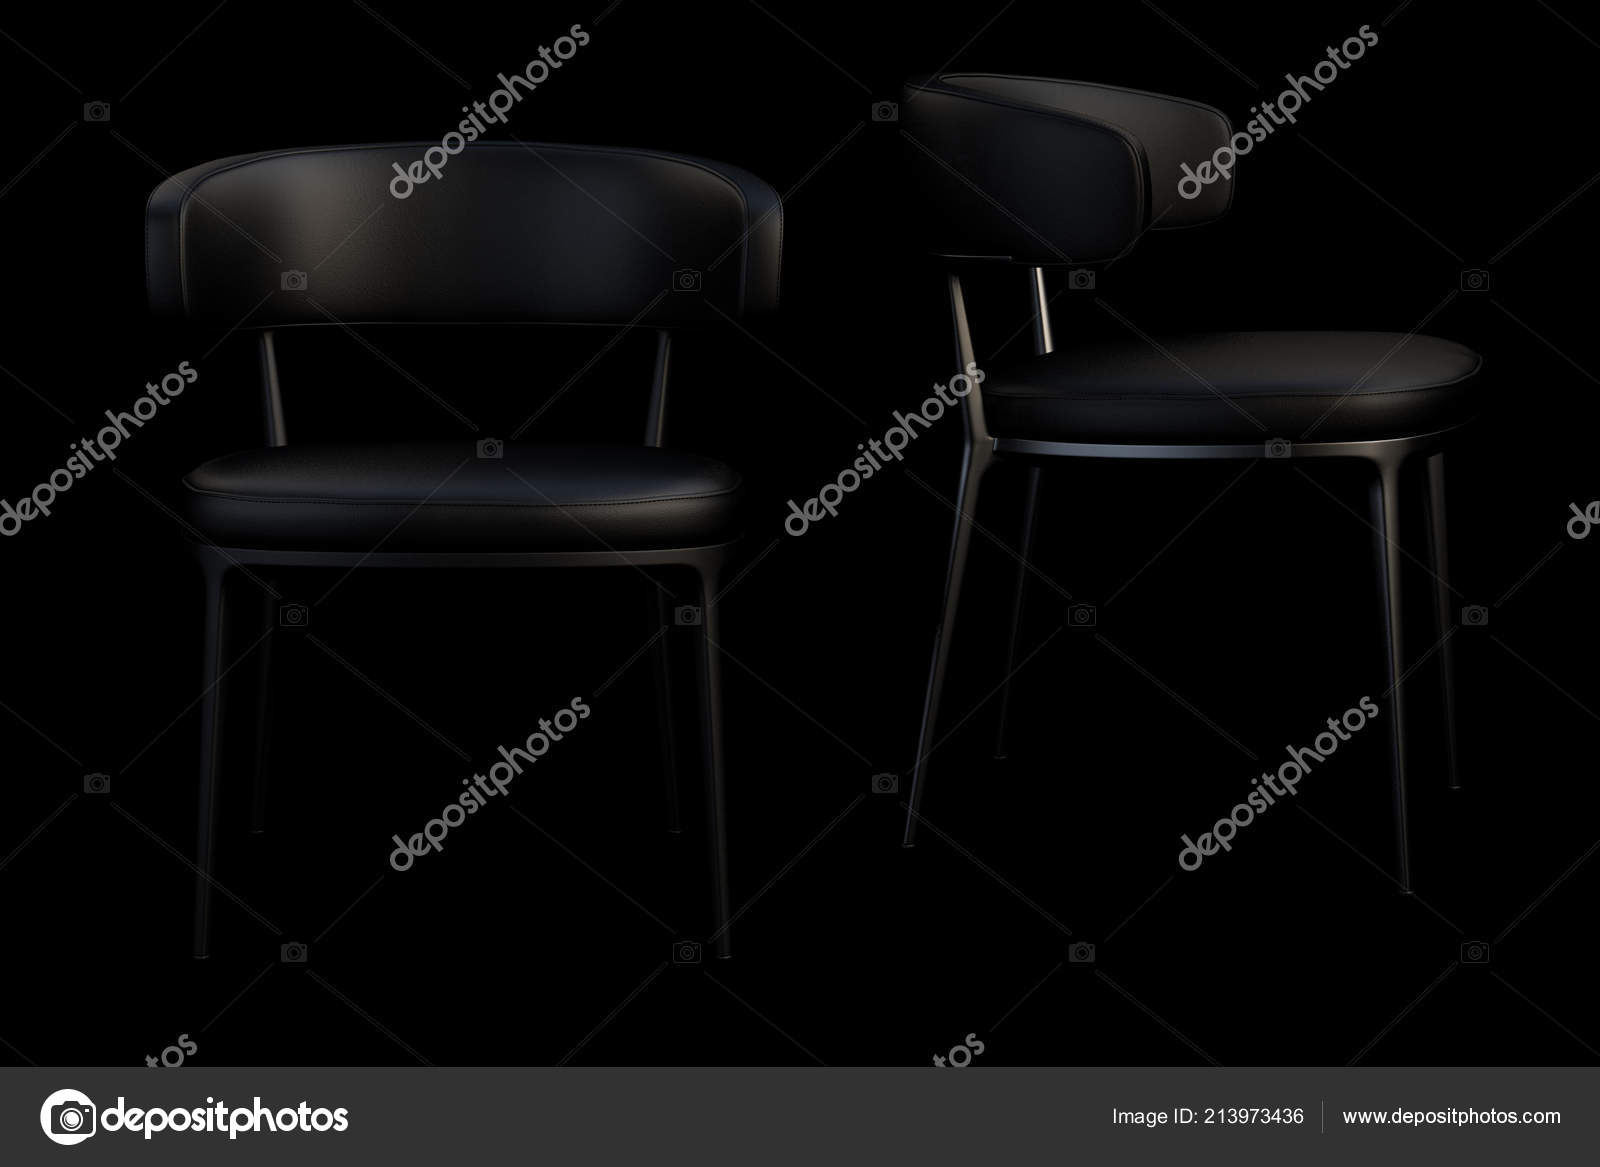 Fabulous Black Leather Chairs Metal Legs Black Background Render Unemploymentrelief Wooden Chair Designs For Living Room Unemploymentrelieforg